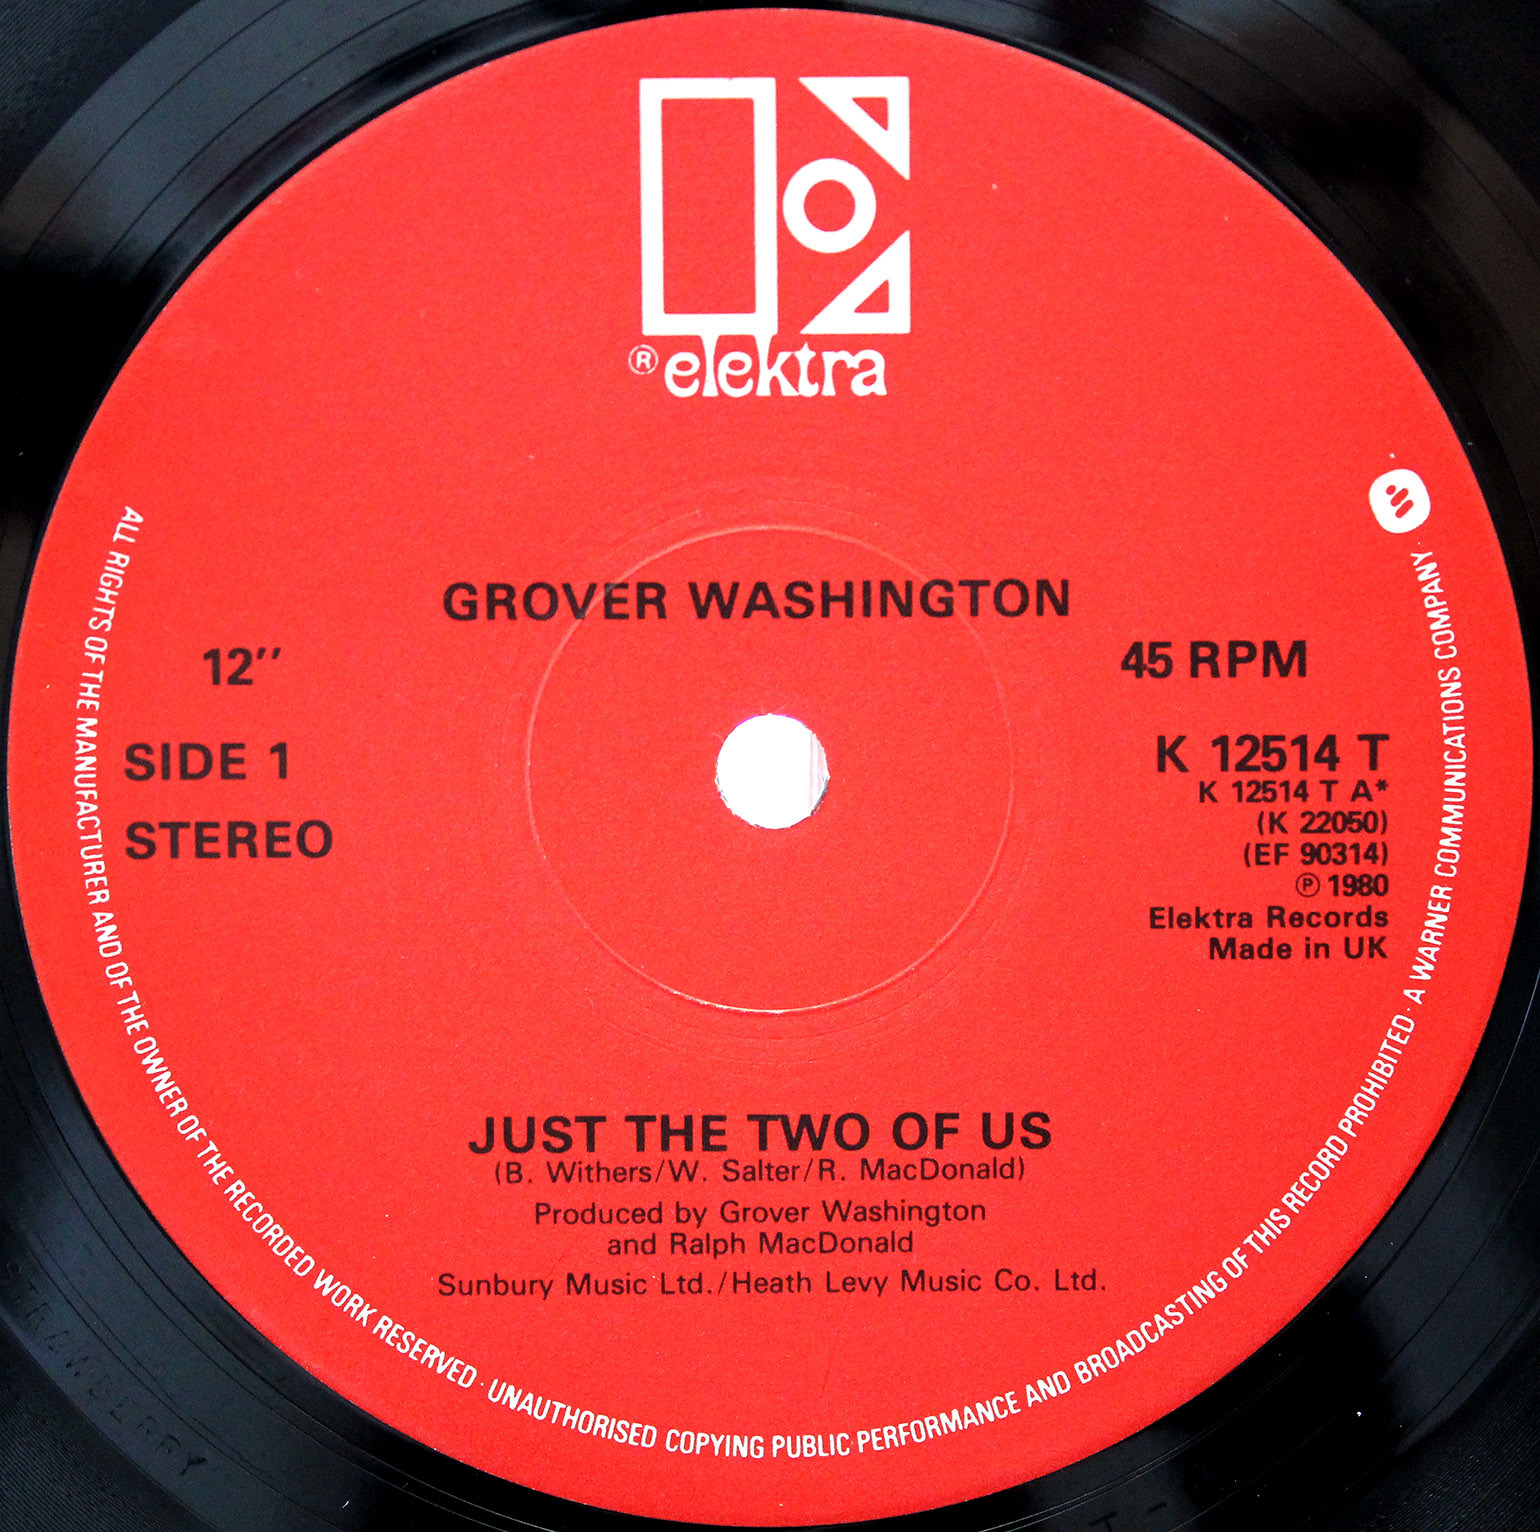 grover washington just the two of us 03